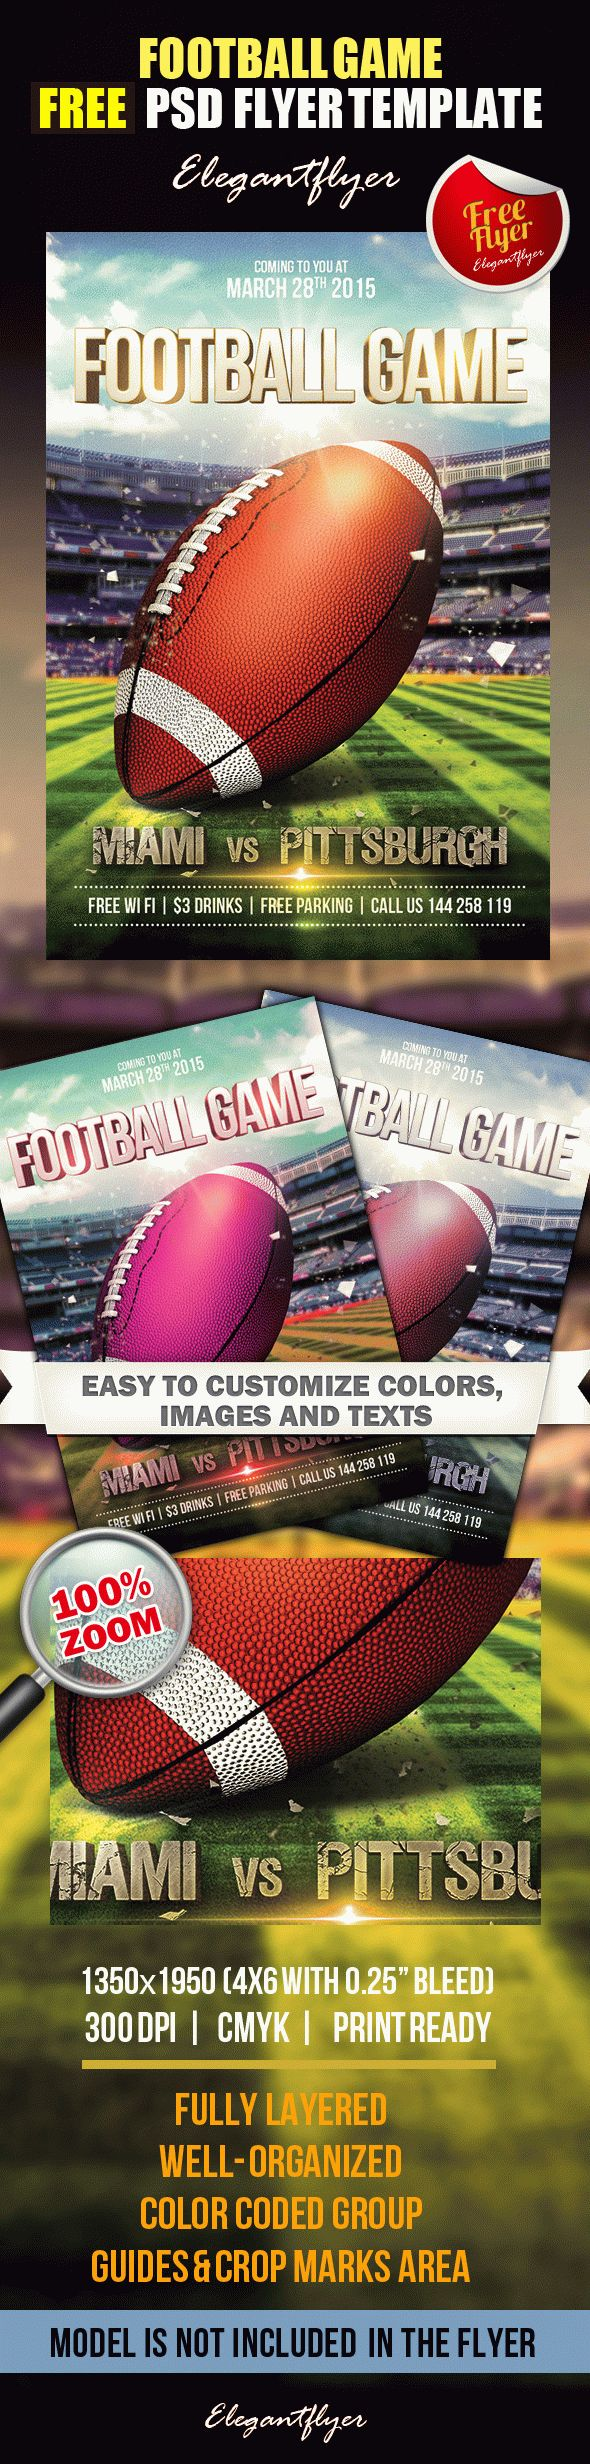 football game free flyer psd template by elegantflyer. Black Bedroom Furniture Sets. Home Design Ideas